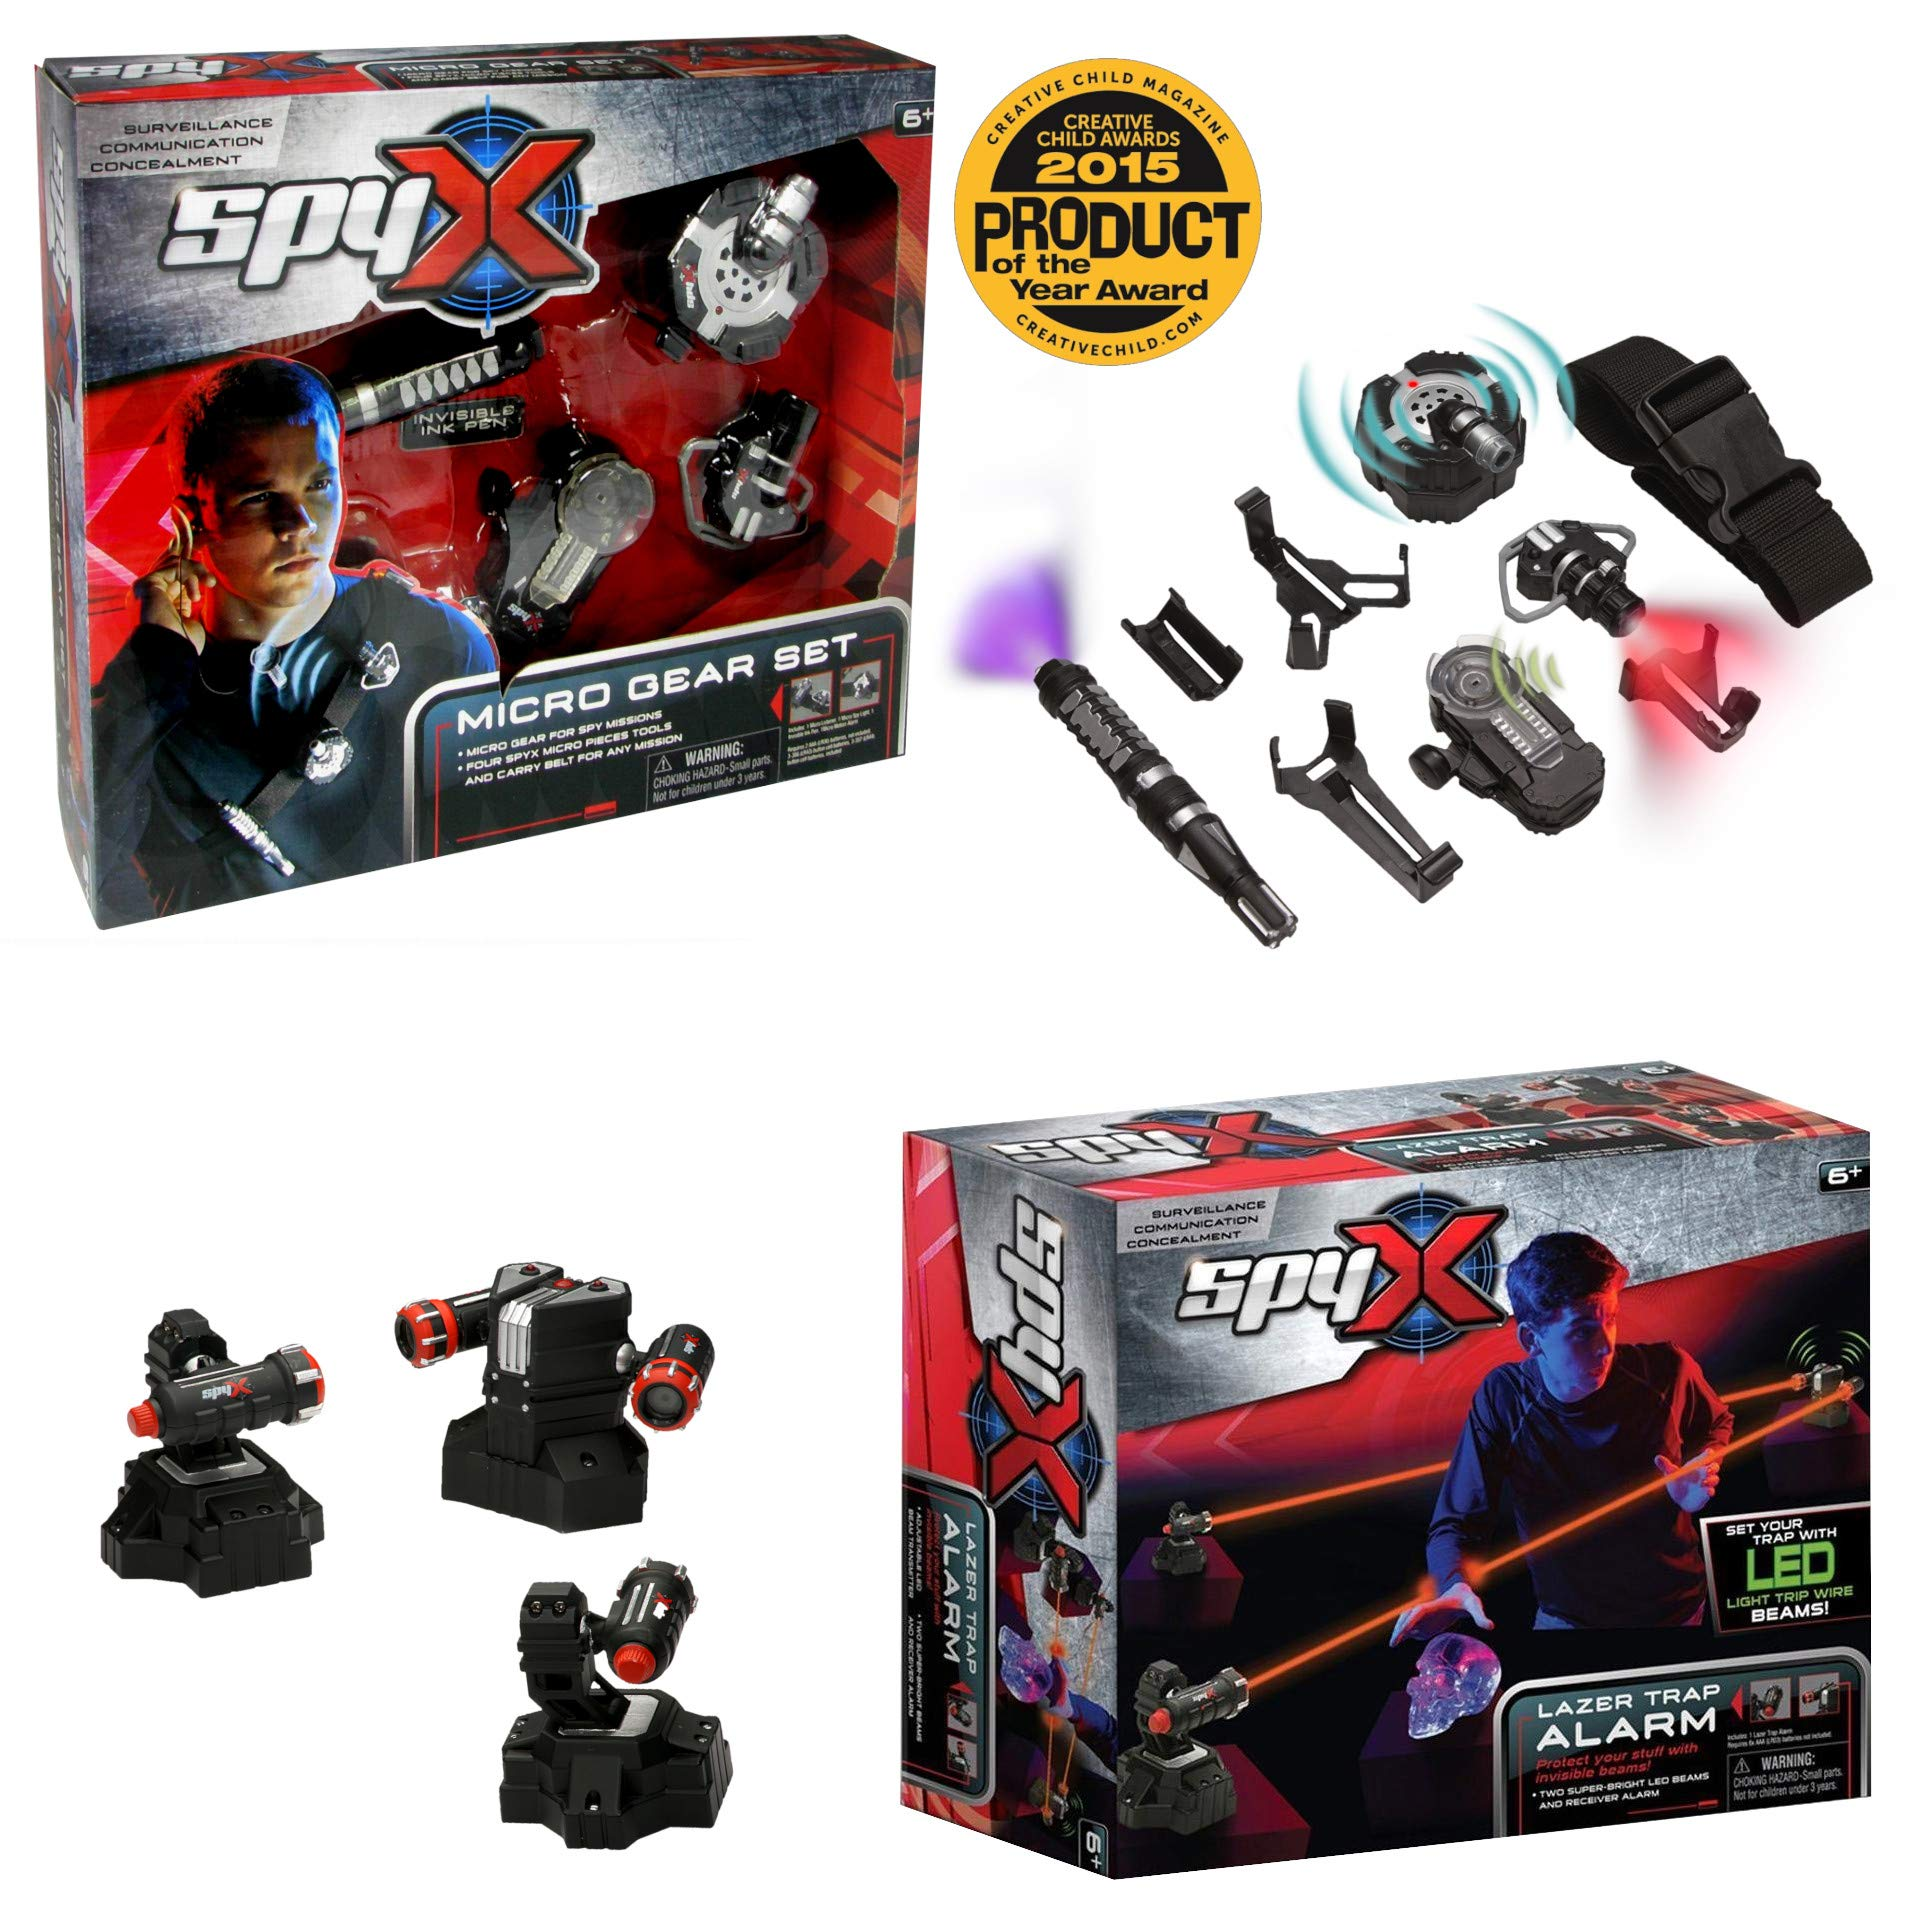 SpyX / Micro Gear Set + Lazer Trap Alarm - 4 Must-Have Spy Tools Attached to an Adjustable Belt + Invisible LED Beam Barrier & Alarm! Jr Spy Fan Favorite & Perfect for Your Spy Gear Collection! by MUKIKIM